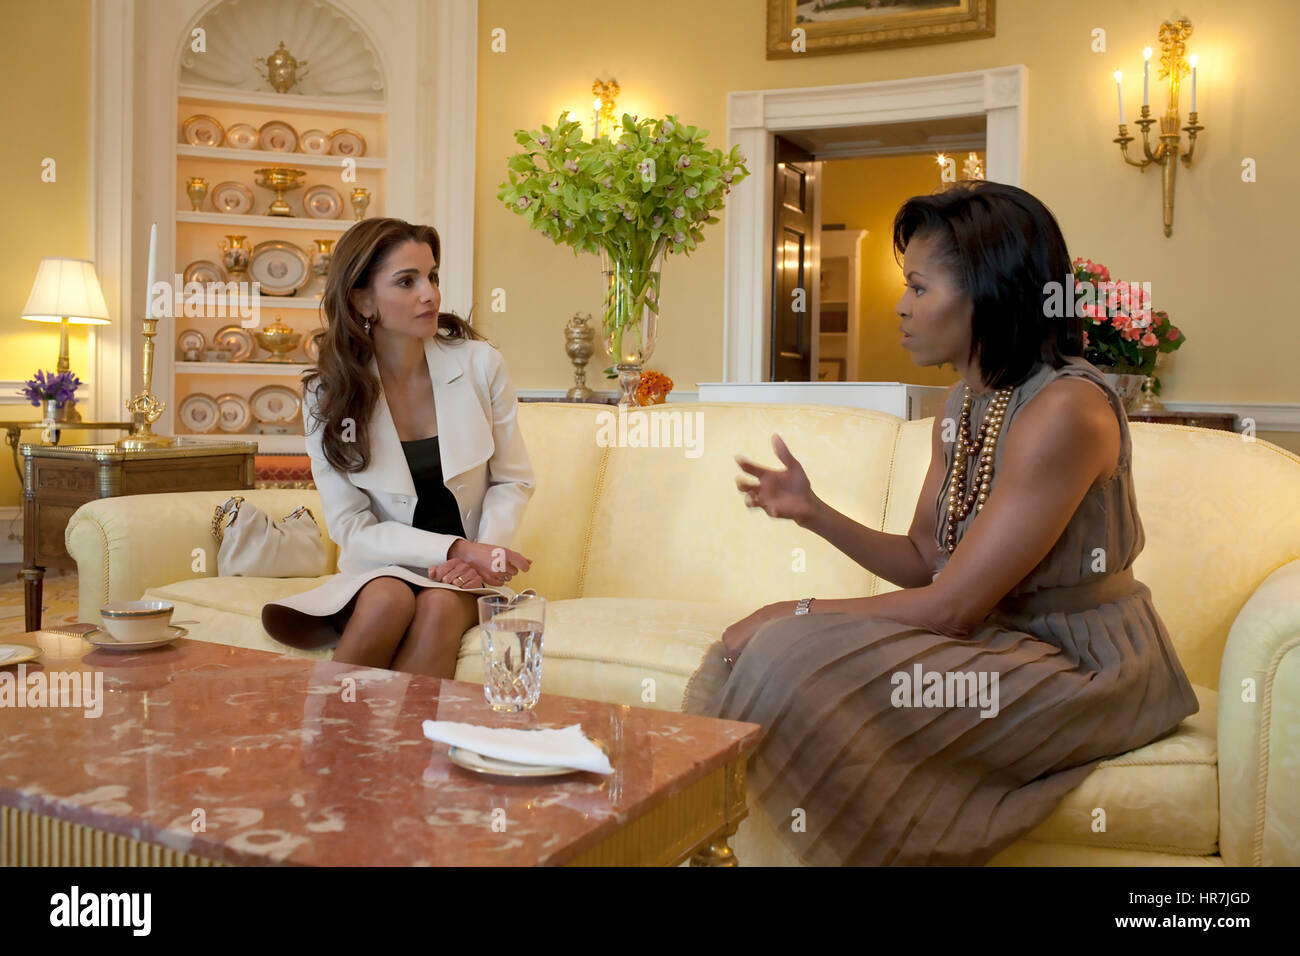 MICHELLE OBAMA with Queen Rania of Jordan in the Yellow Oval room of the White House in April 2009. Photo: Samantha - Stock Image